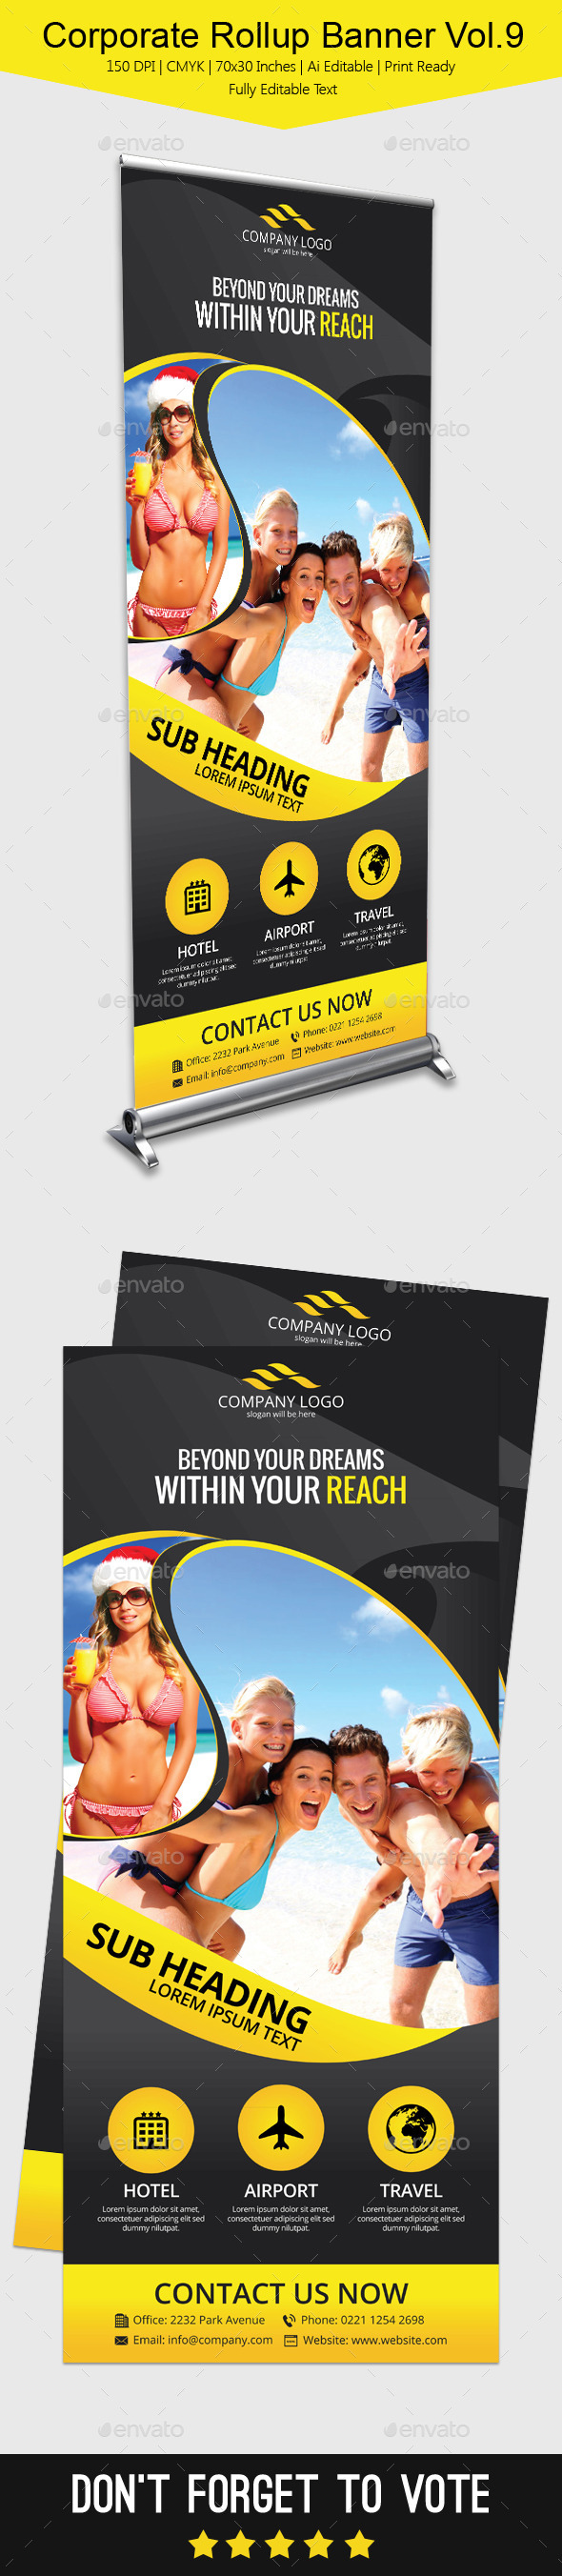 Corporate Rollup Banner Vol.9 - Signage Print Templates